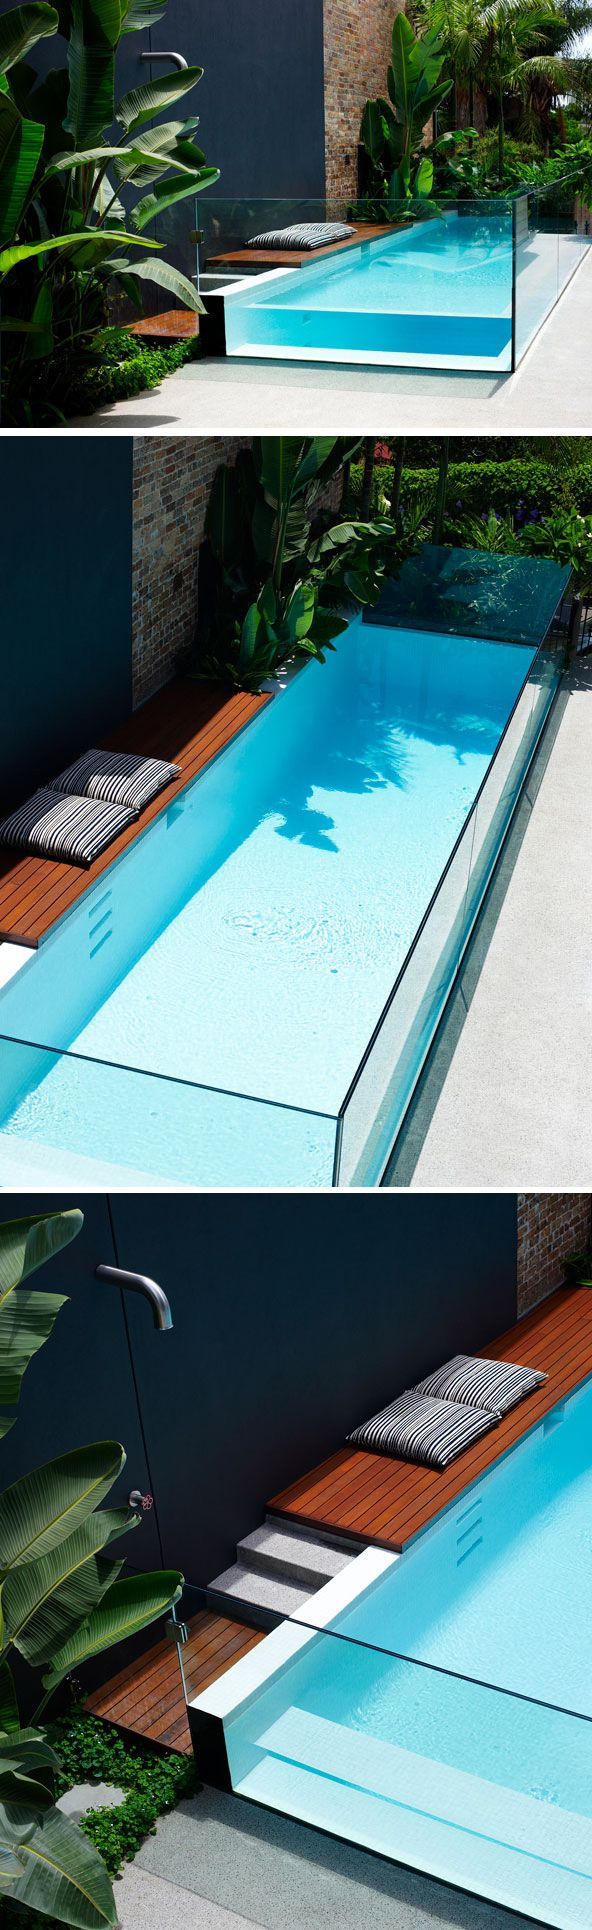 This stunning garden with a little pool is all about making the